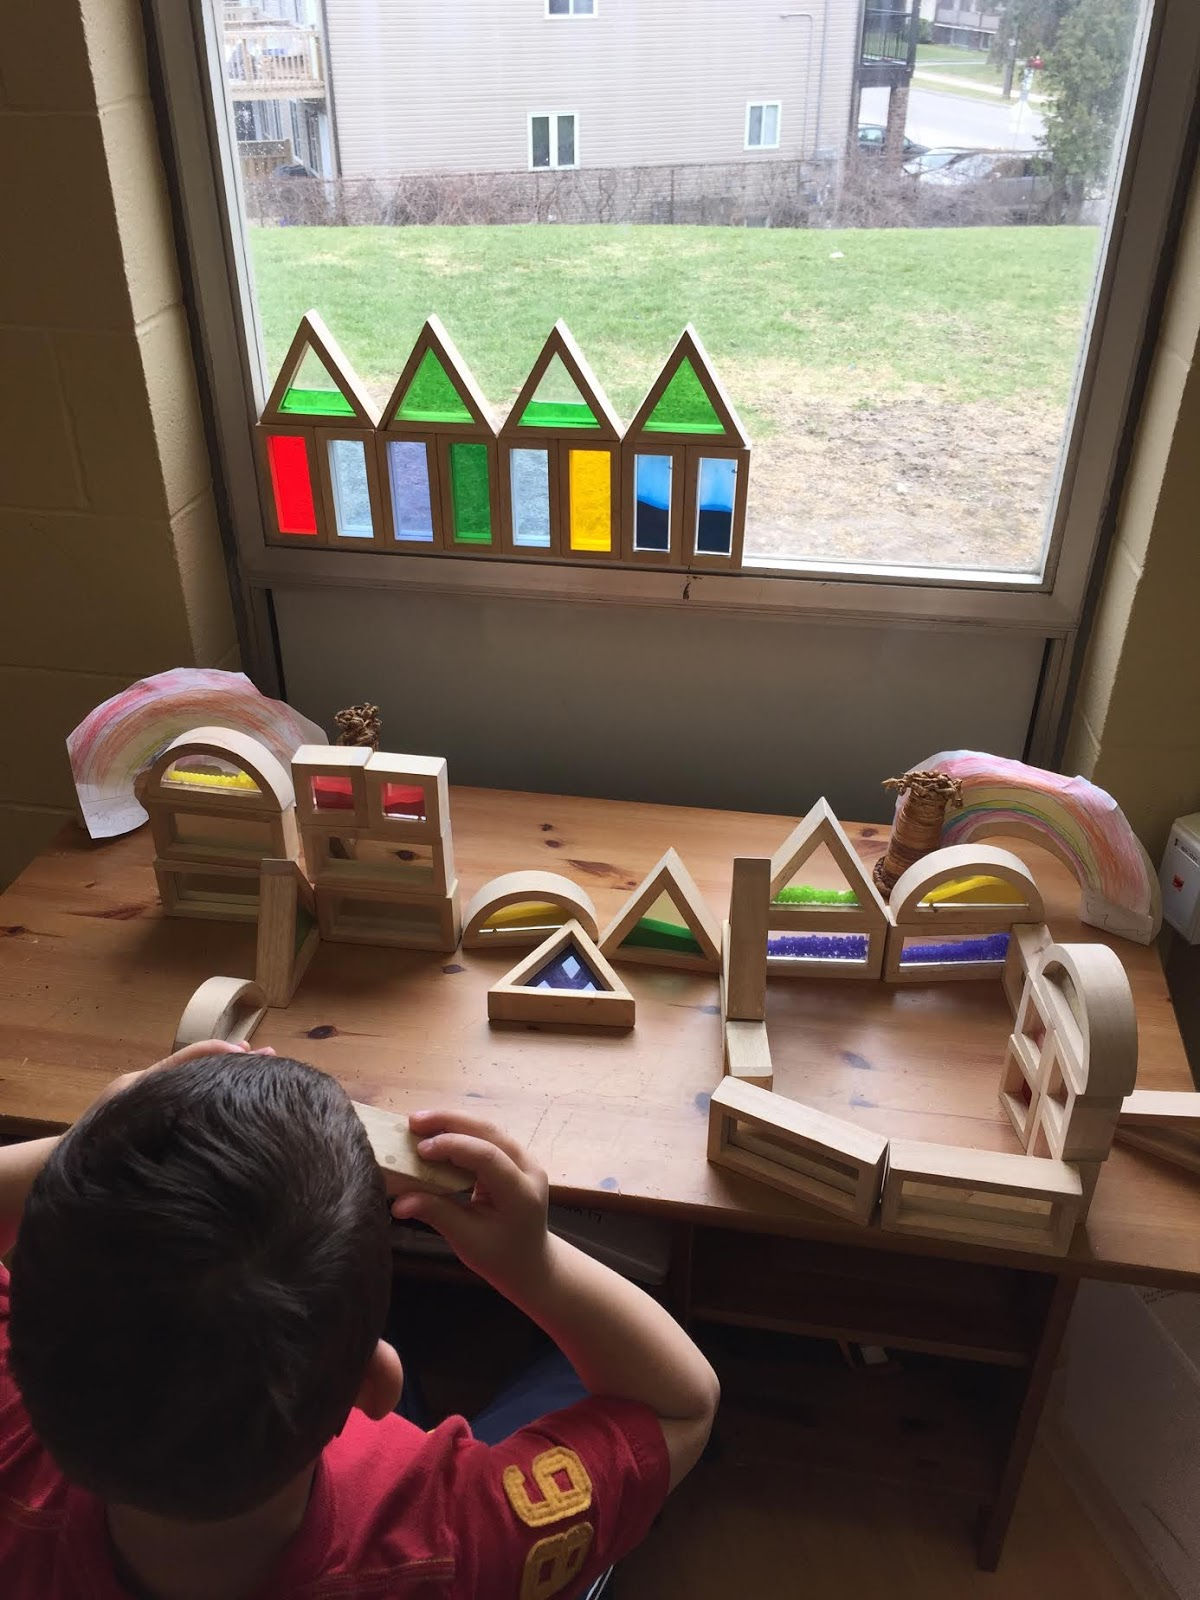 Kinder Garden: Wonders In Kindergarten: Travelling Tuesday: Passionately